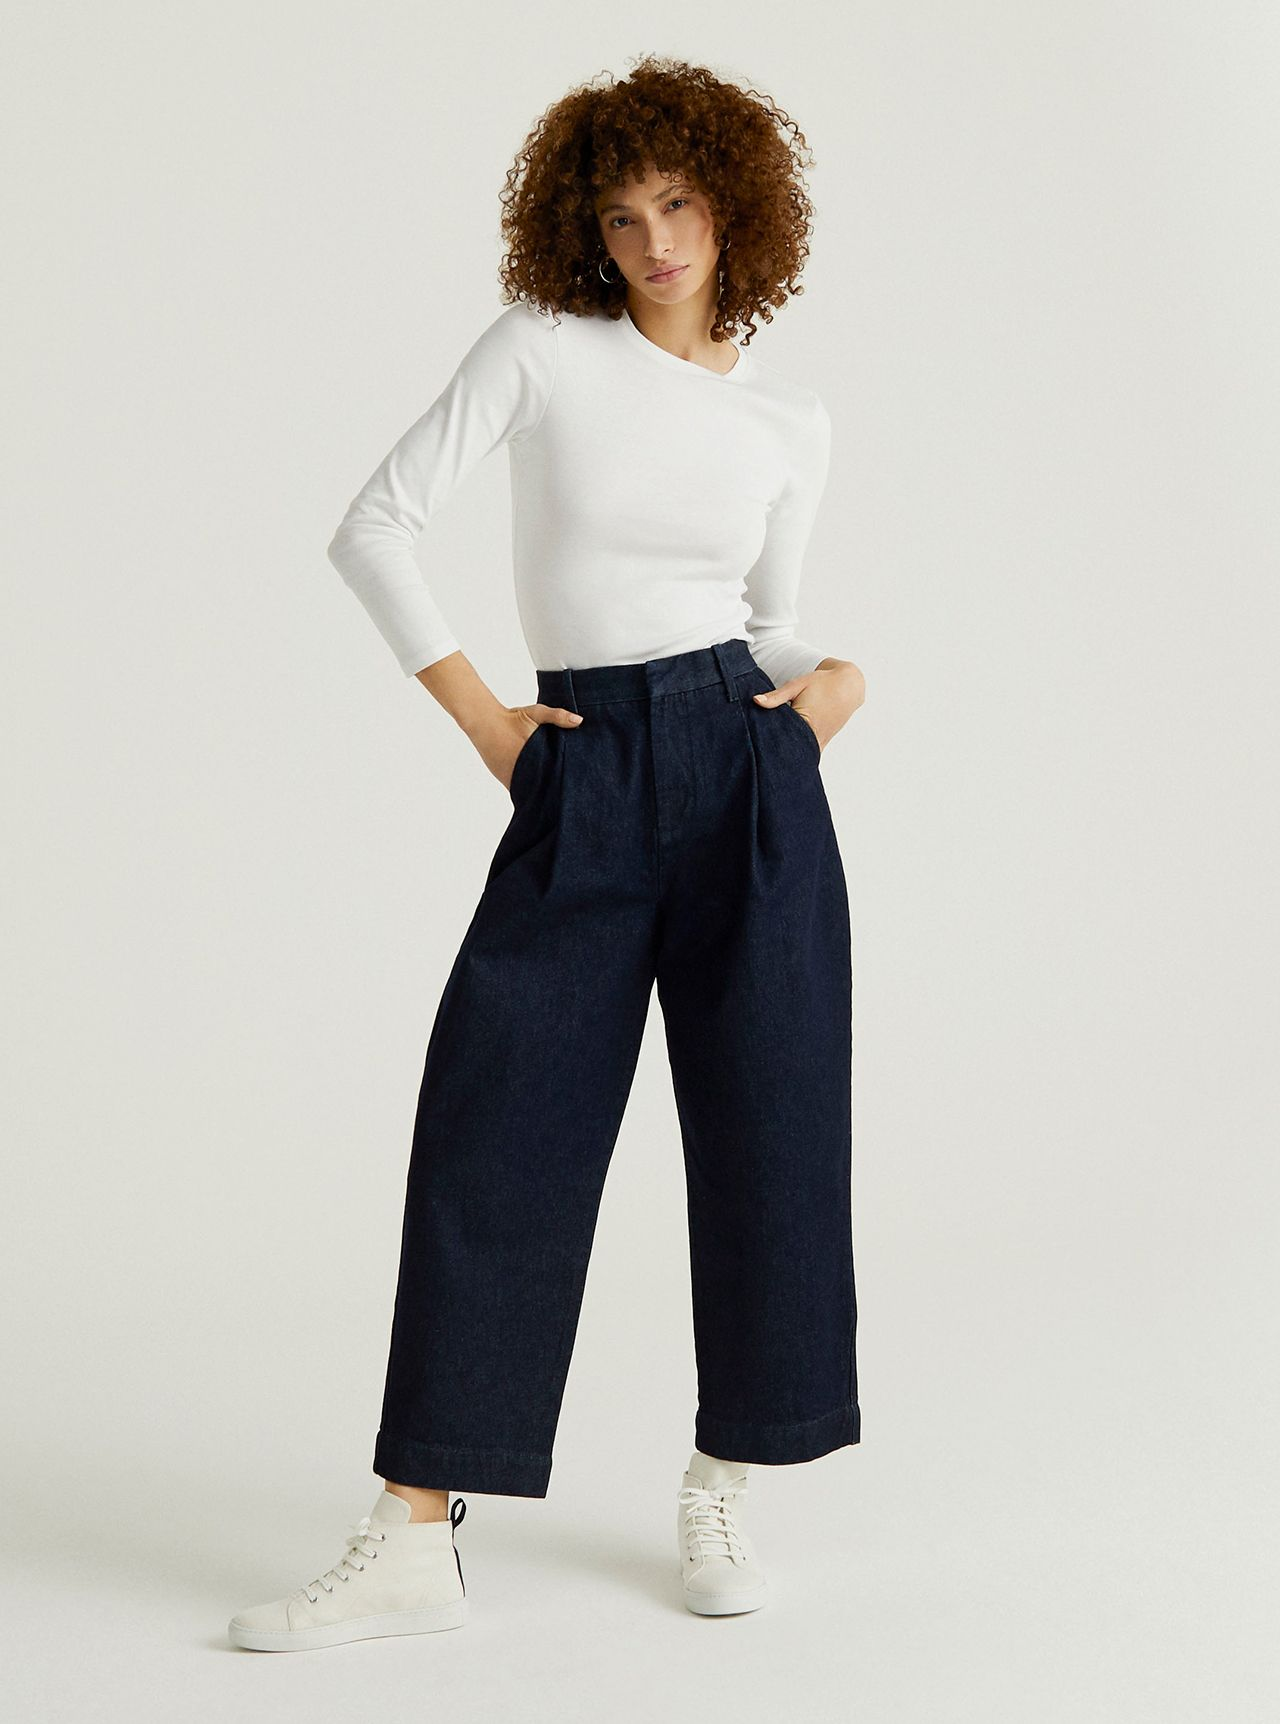 John Lewis & Partners Denim - The Tailored Jean